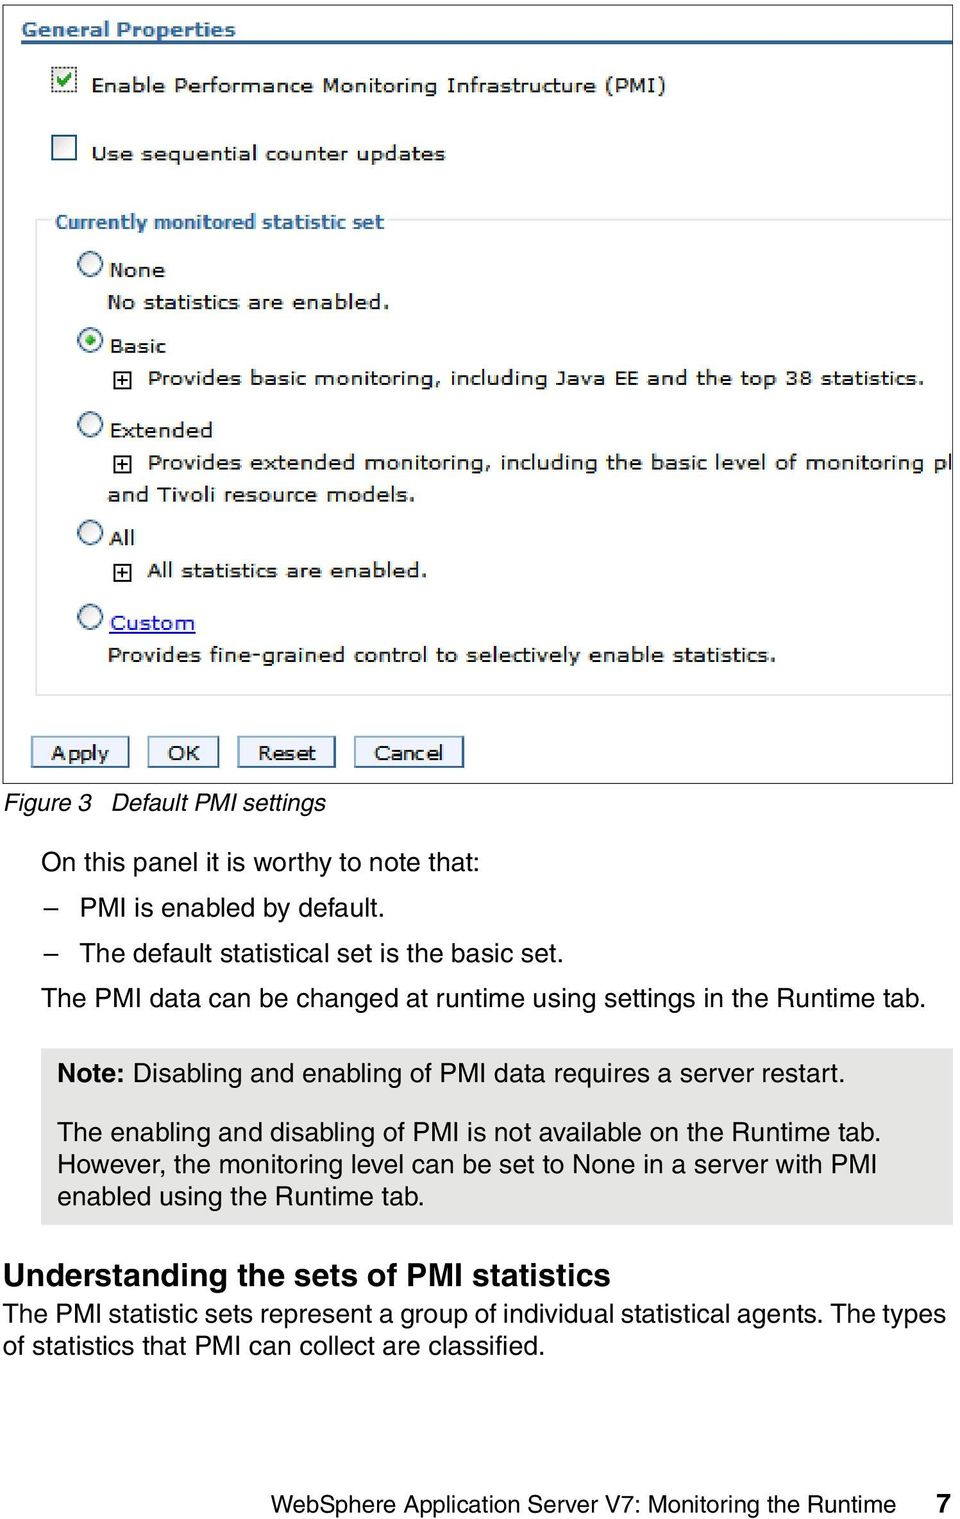 The enabling and disabling of PMI is not available on the Runtime tab. However, the monitoring level can be set to None in a server with PMI enabled using the Runtime tab.